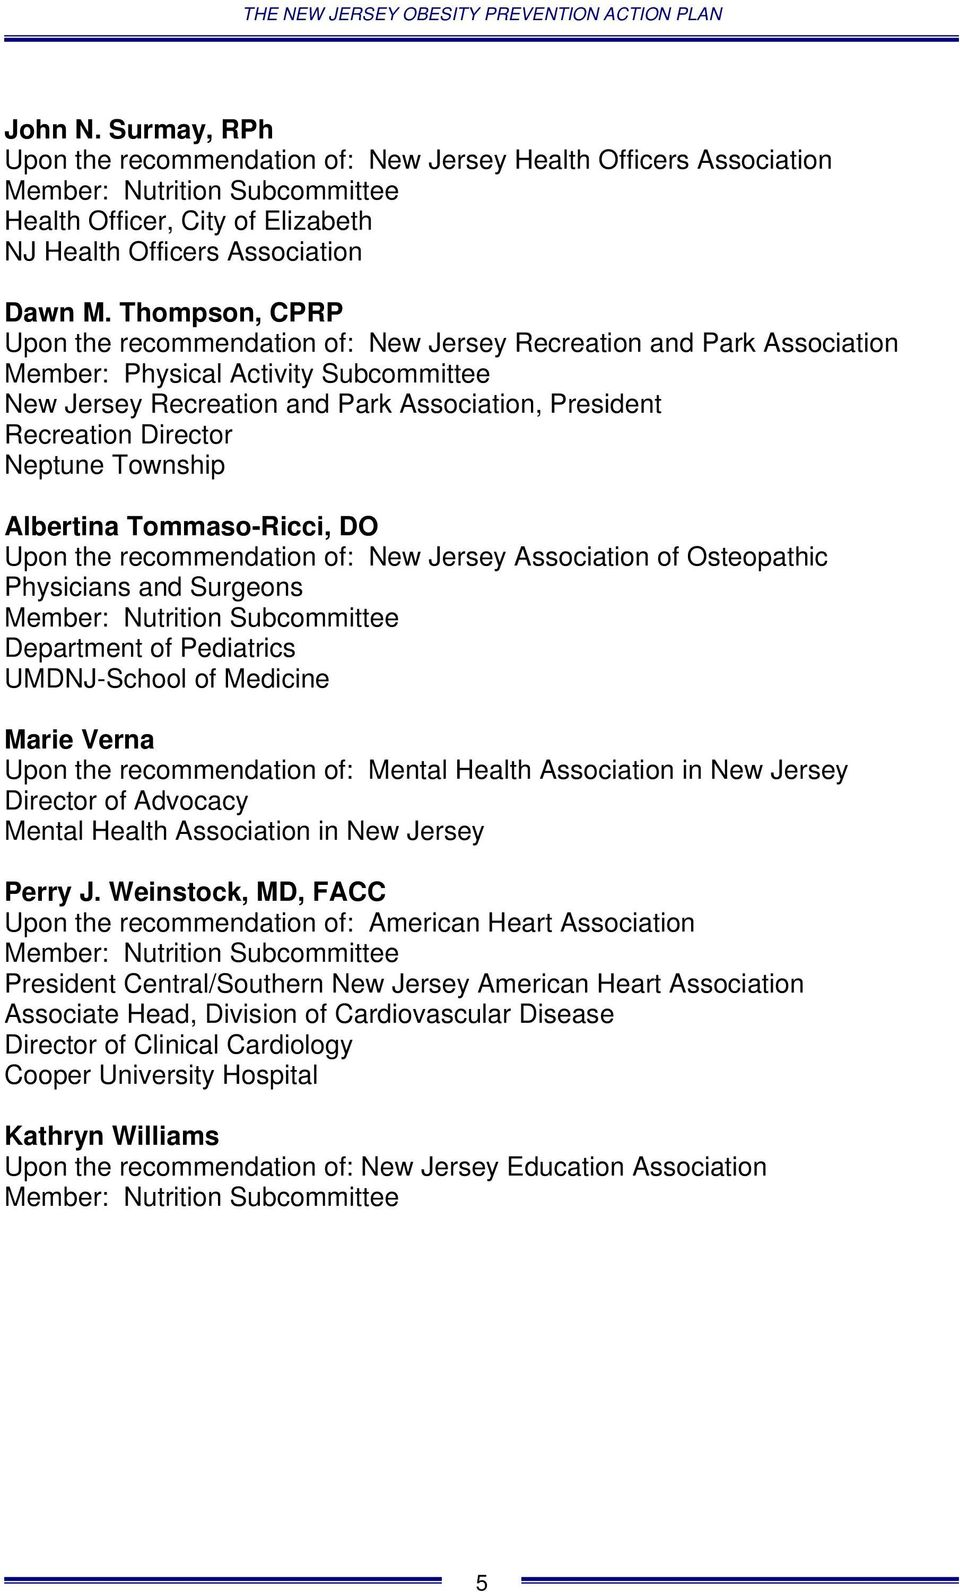 Neptune Township Albertina Tommaso-Ricci, DO Upon the recommendation of: New Jersey Association of Osteopathic Physicians and Surgeons Member: Nutrition Subcommittee Department of Pediatrics